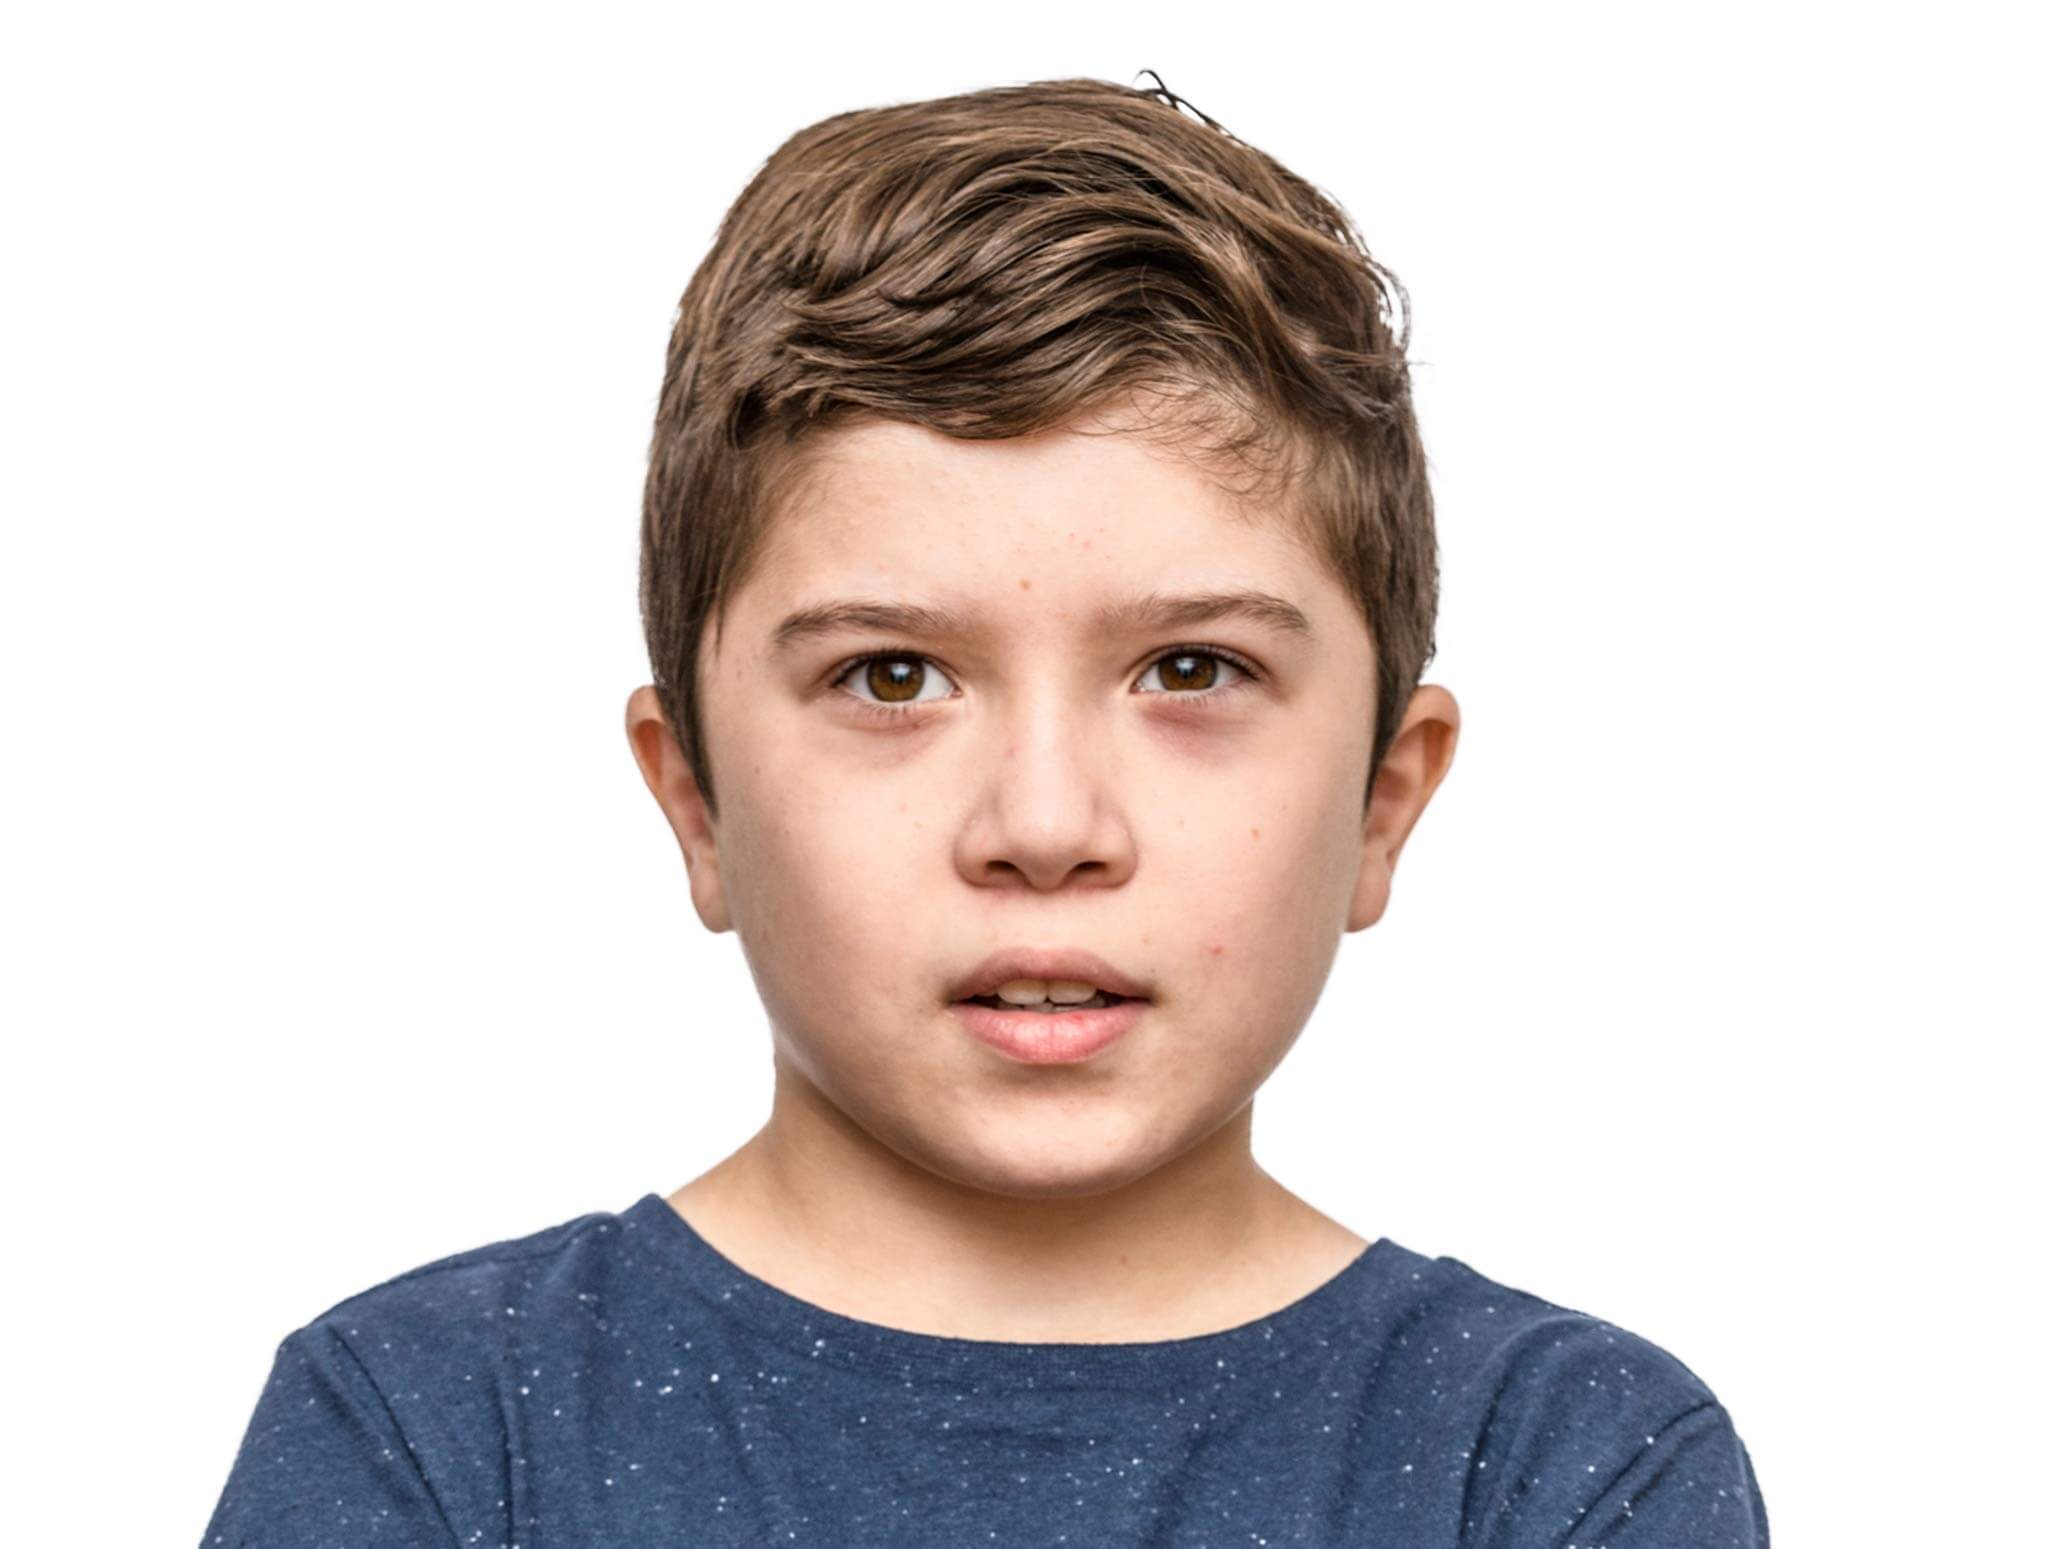 young teenage boy with autism looking at camera slightly smiling